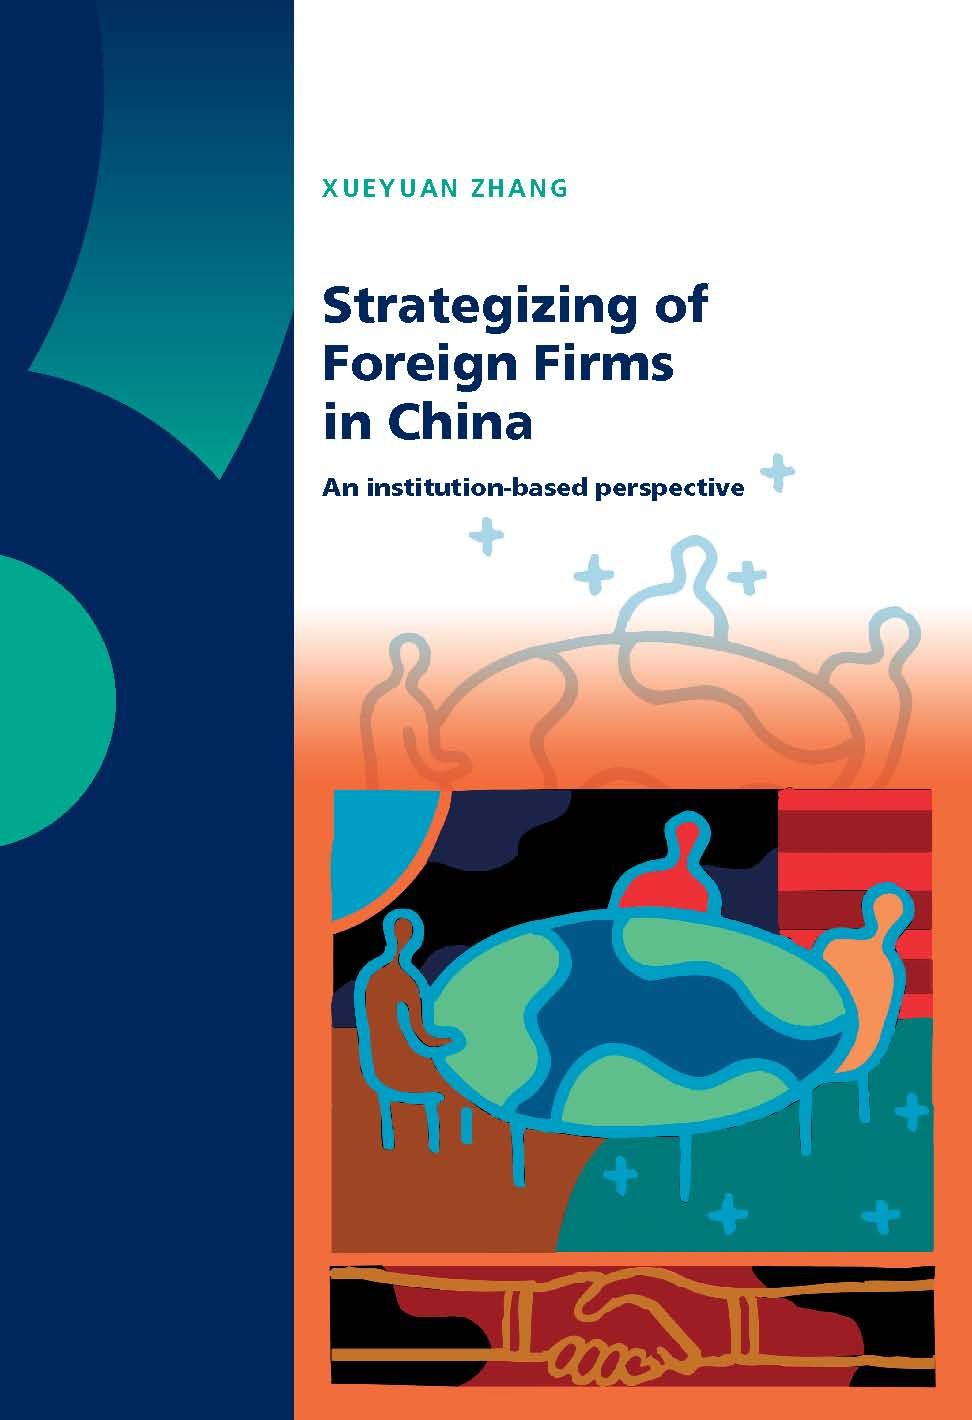 Strategizing of Foreign Firms in China: An Institution-based Perspective